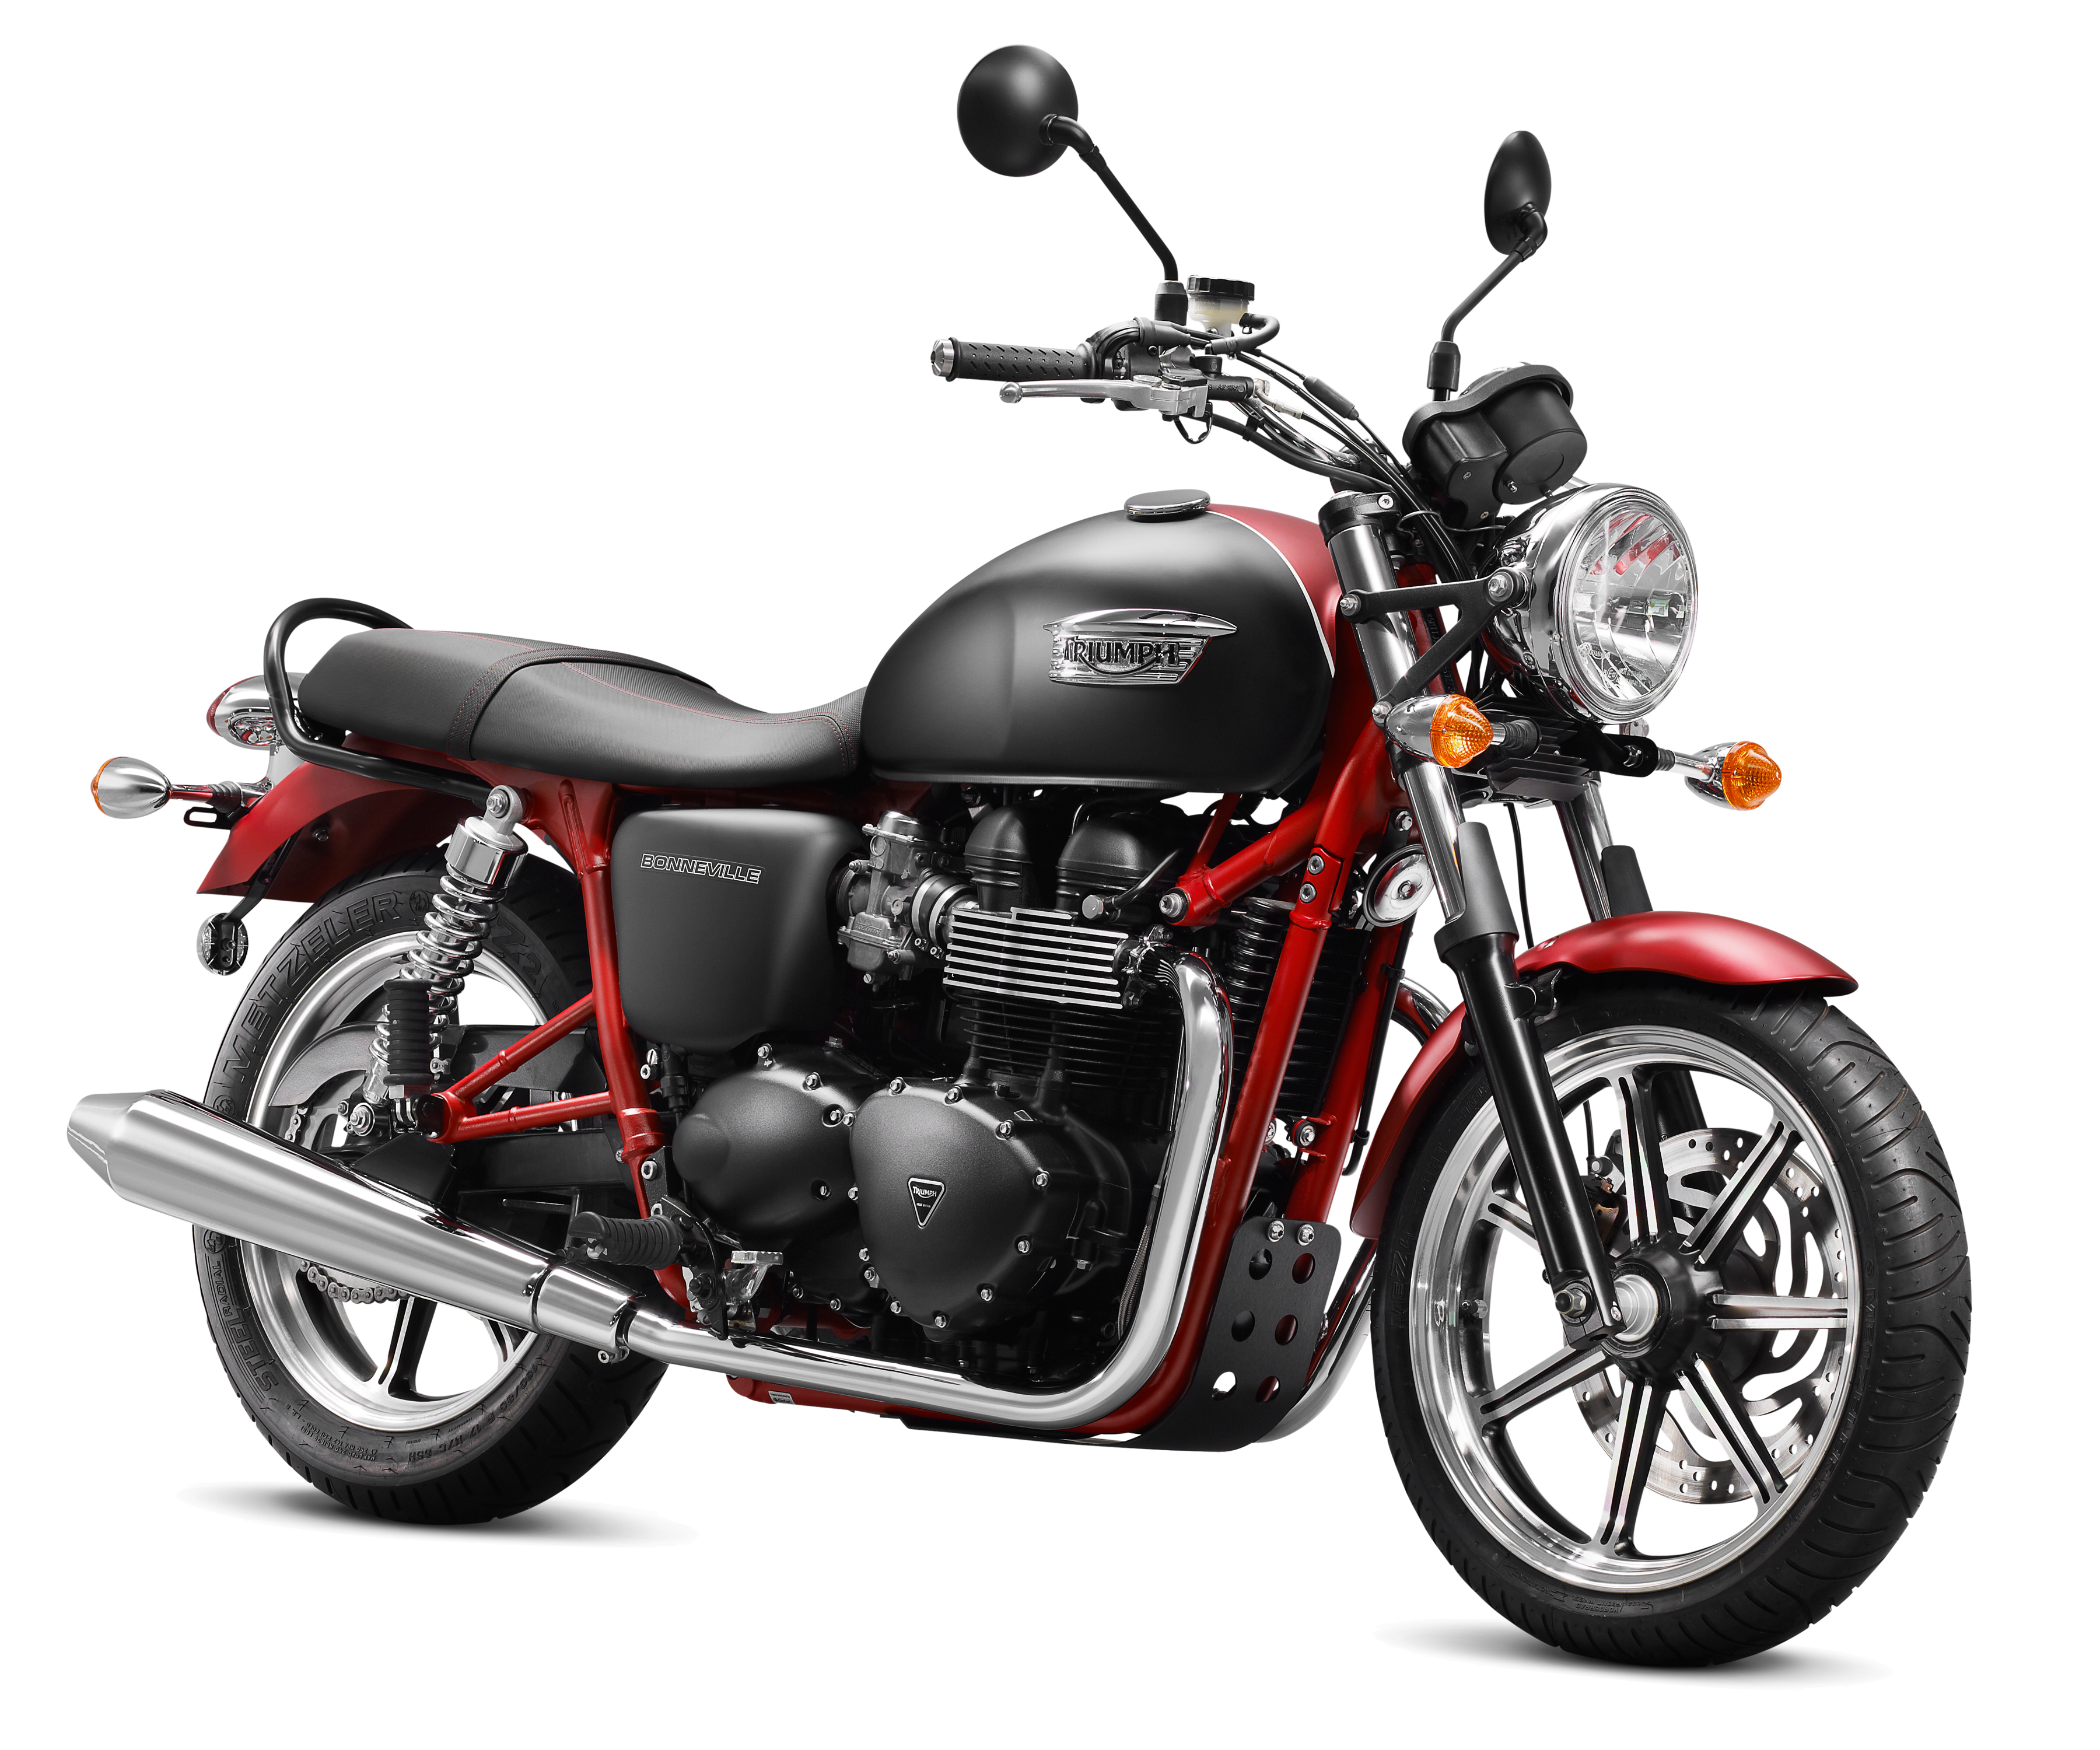 Motorcycle png images. Motocycles pinterest cars motorcyclepngpng